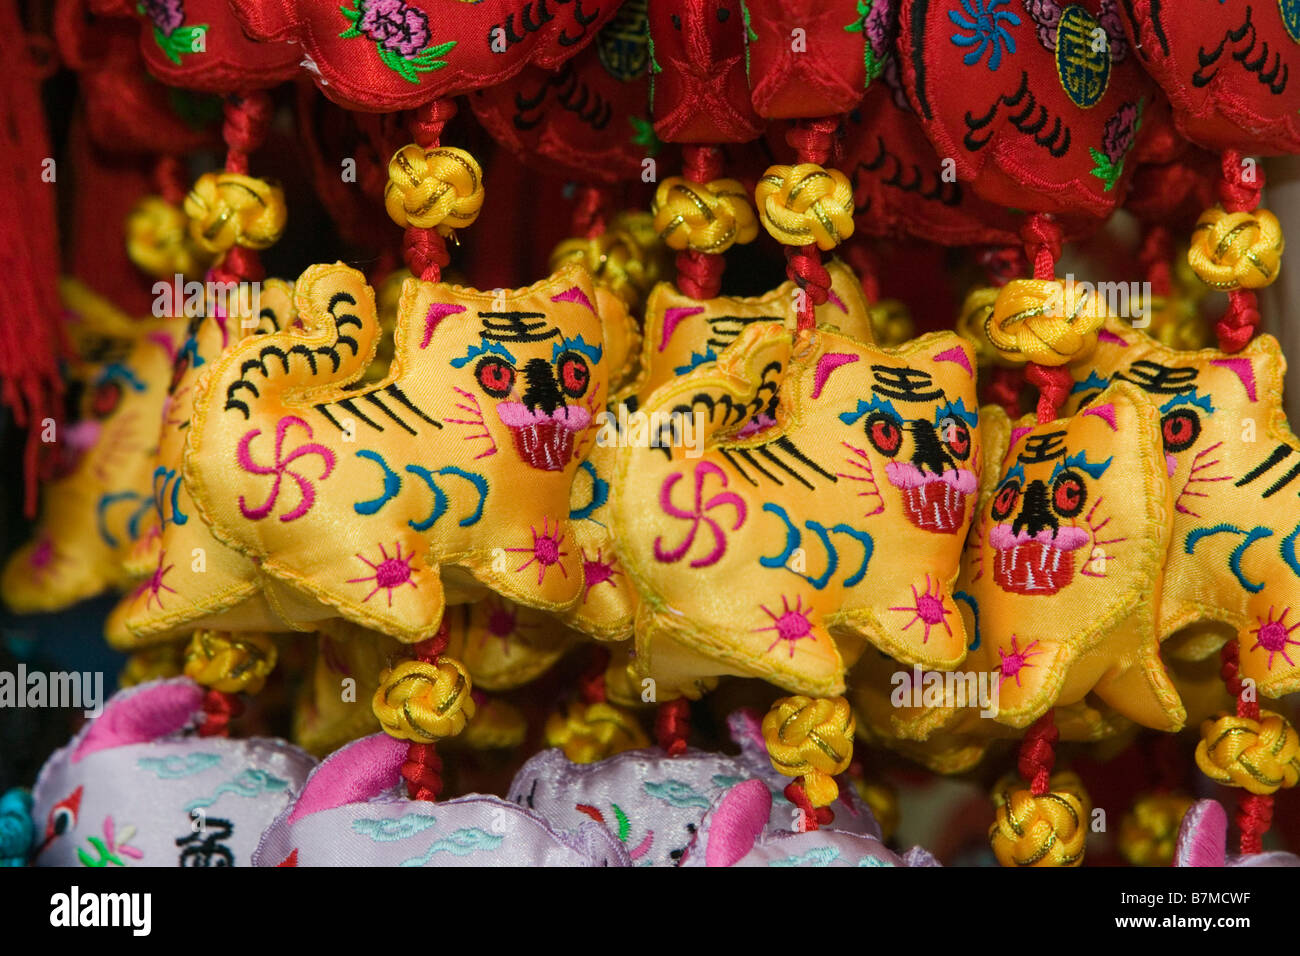 Year of the Tiger - Chinese Horoscope - Stock Image